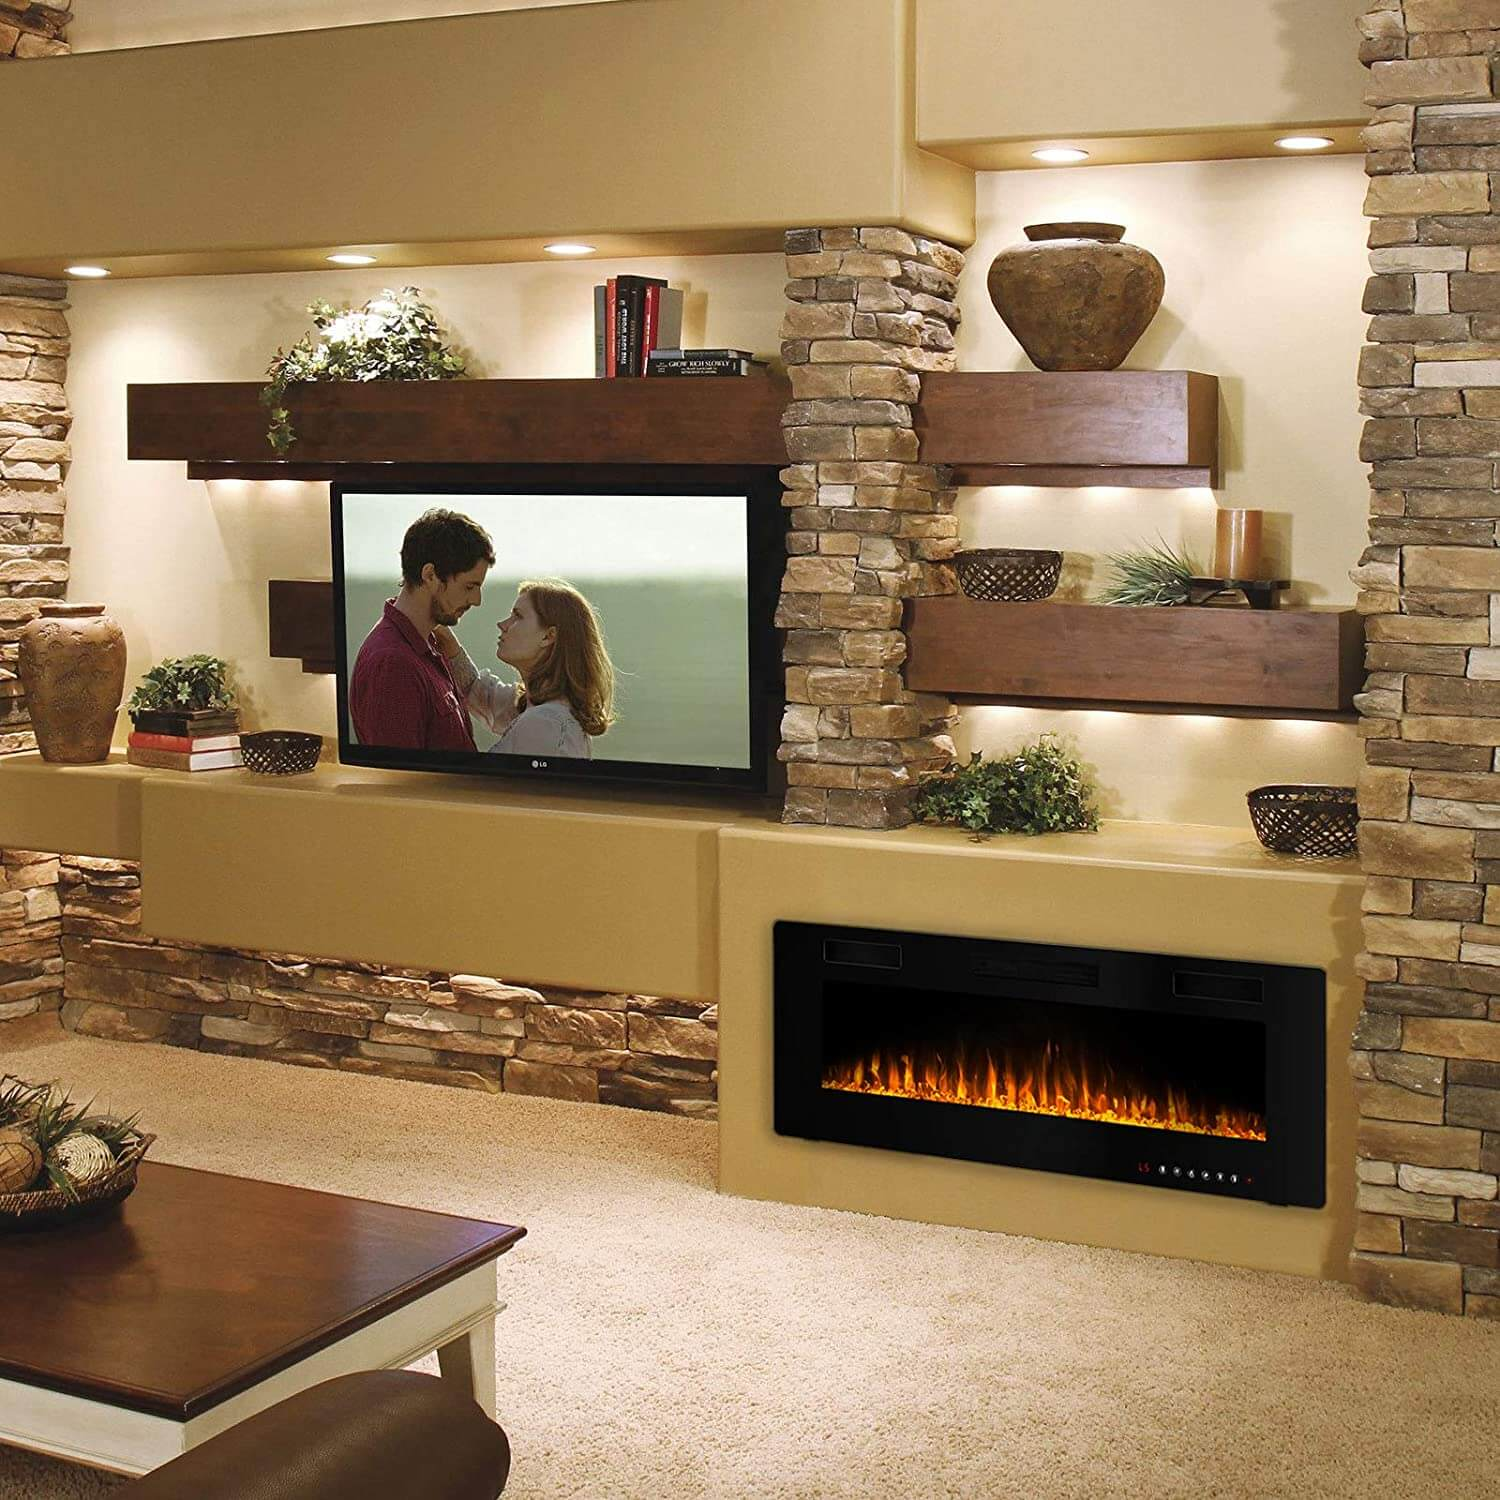 Recessed and Mounted Electric Fireplace